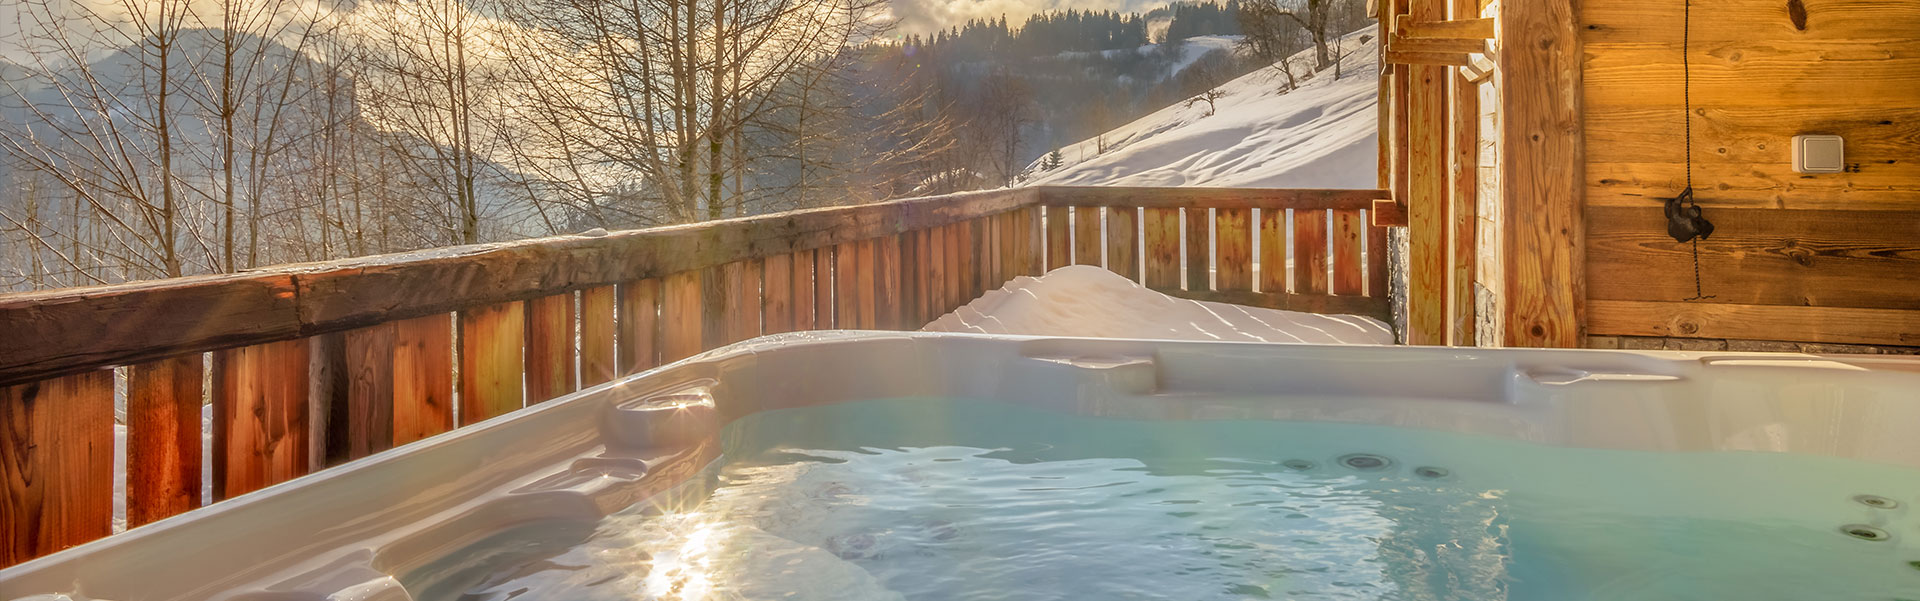 Spa jacuzzi annecy